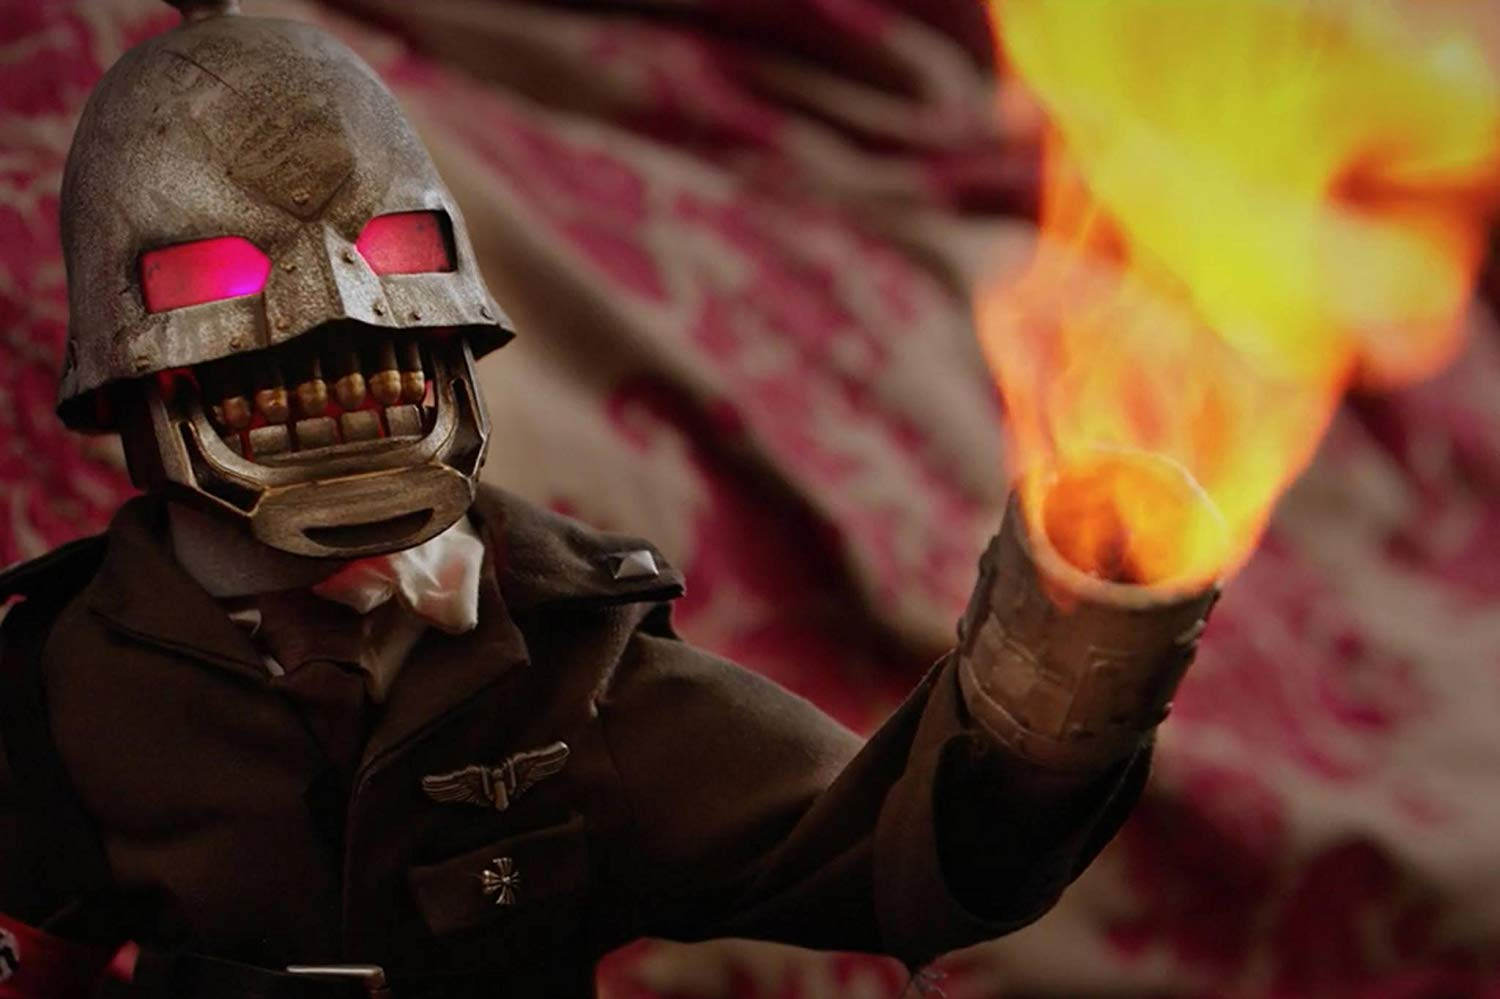 'Puppet Master: The Littlest Reich' Does Not Care About Your Snowflake Feelings